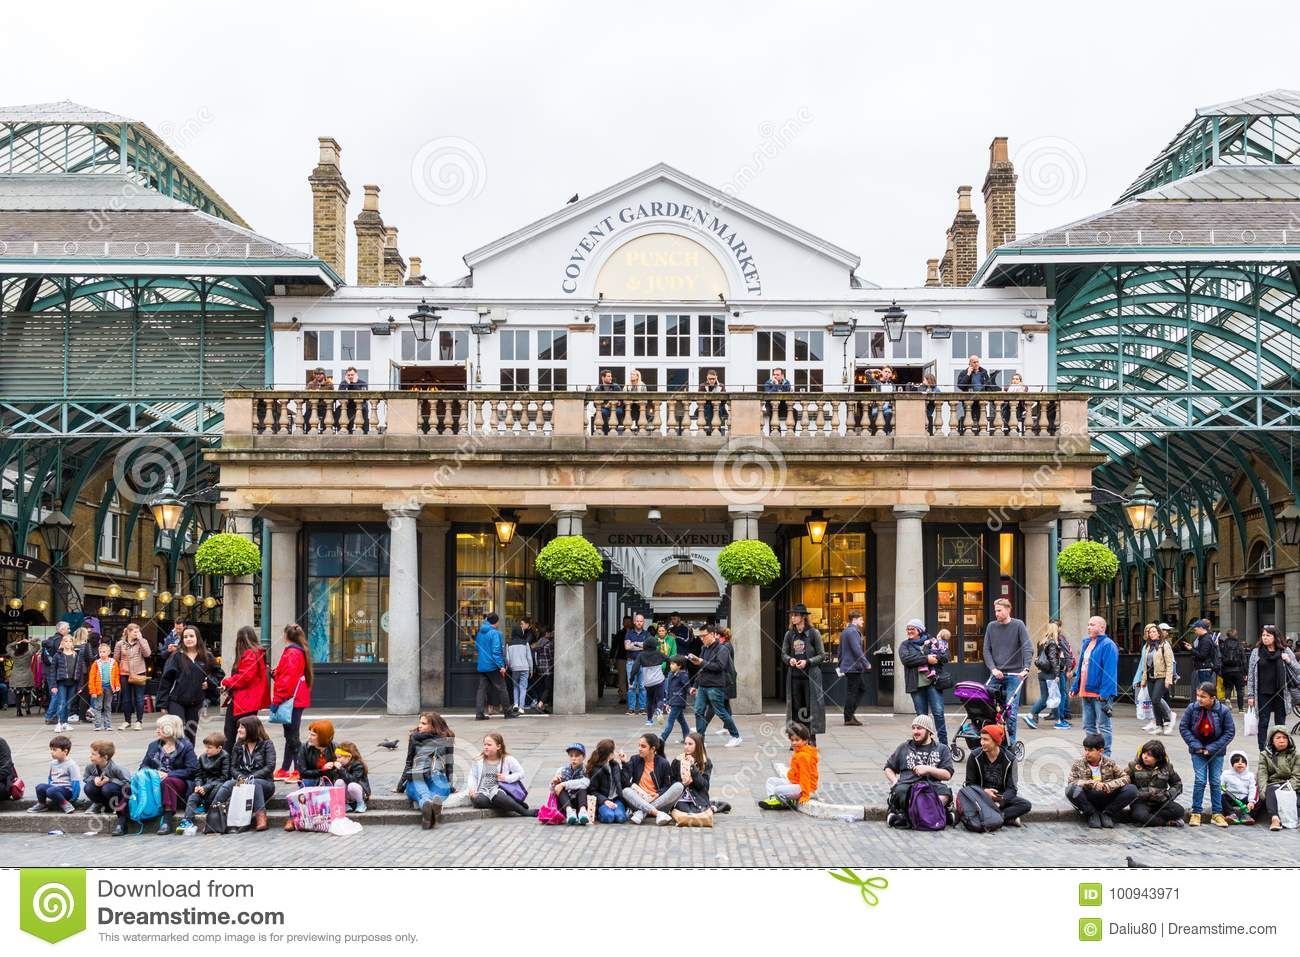 London, England - April 4, 2017: Covent Garden market, one of th